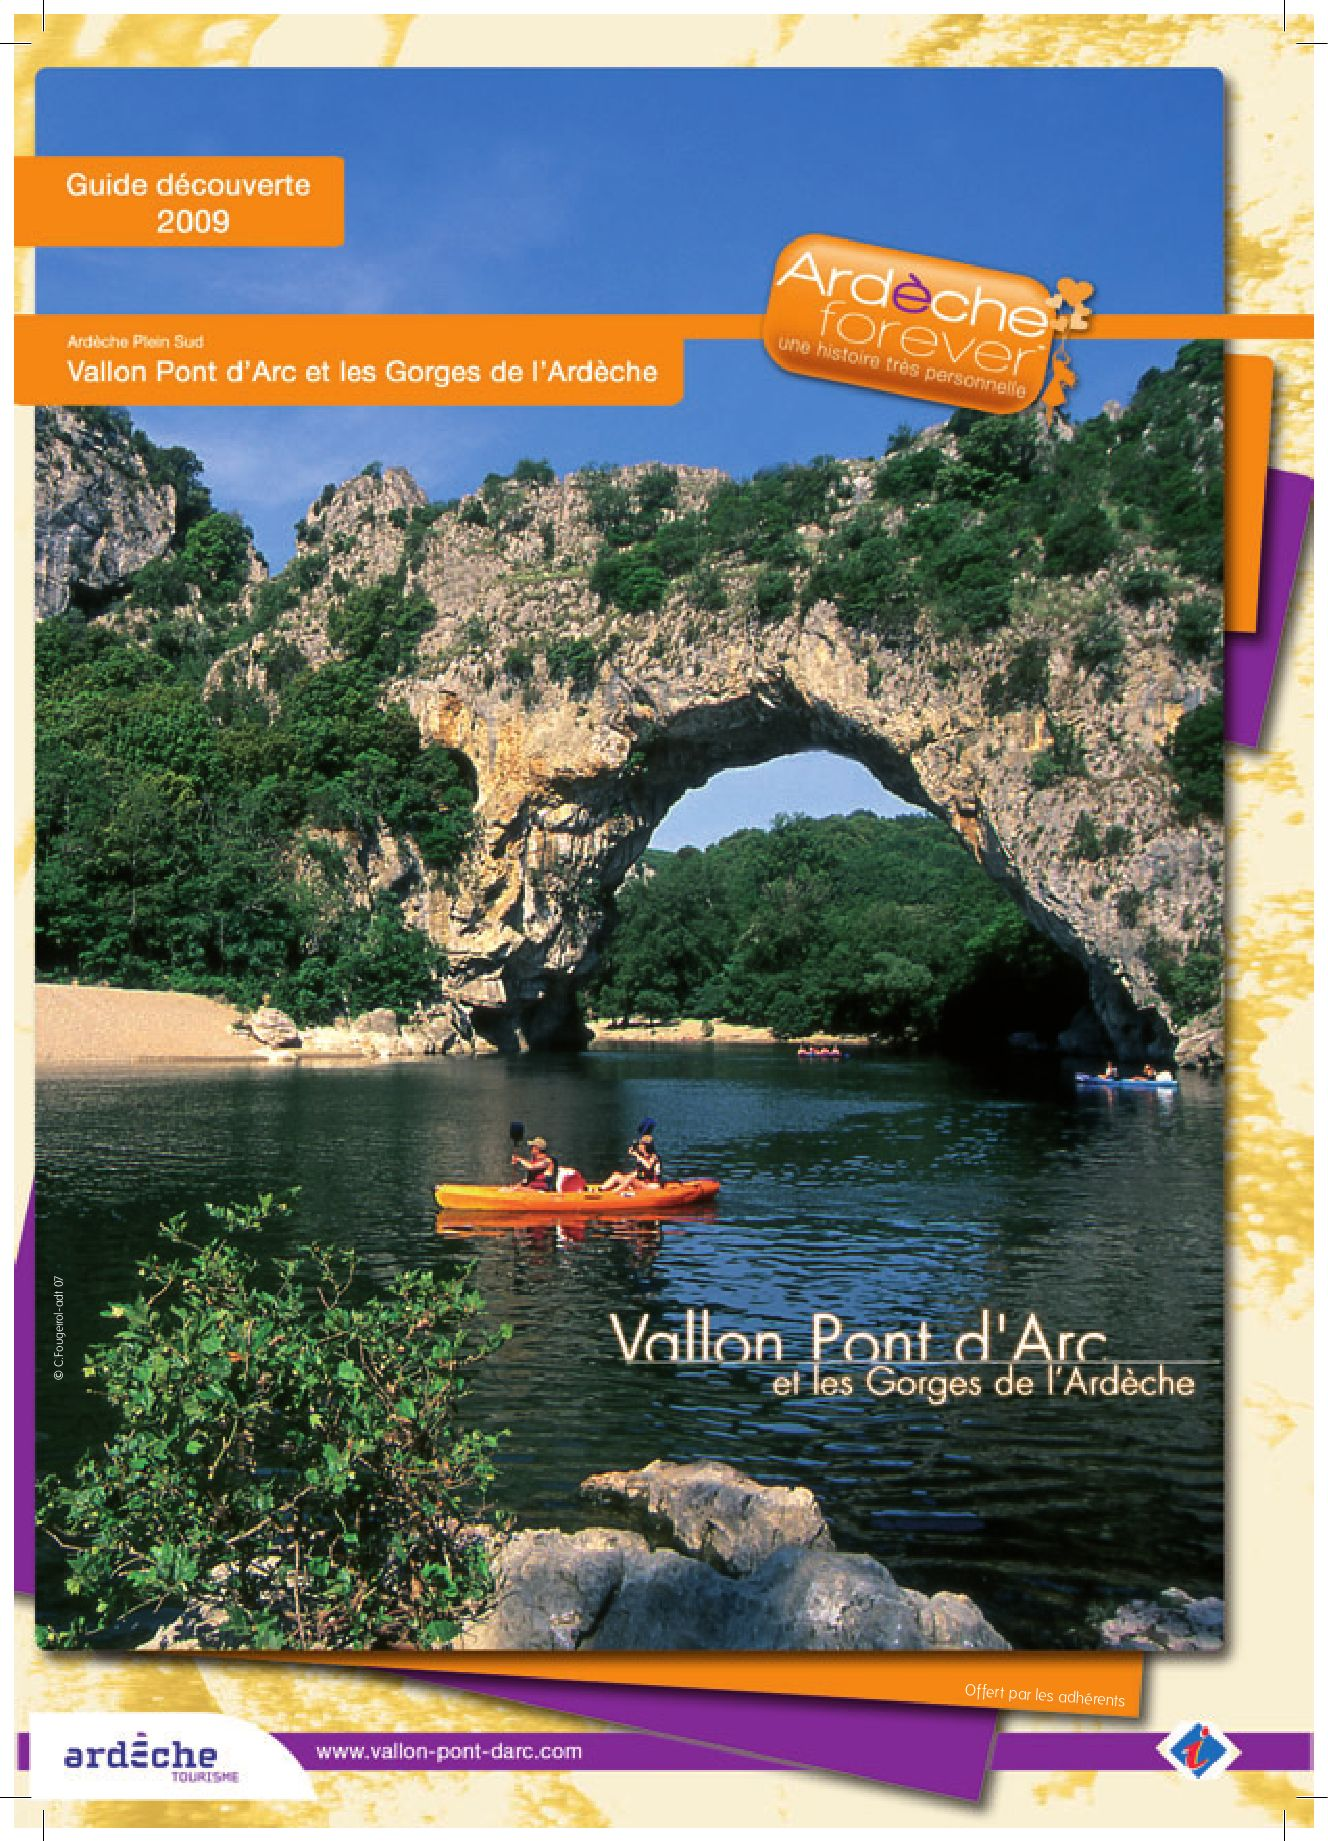 Guide découverte 2009 Vallon Pont d Arc by Sam Hickmann issuu